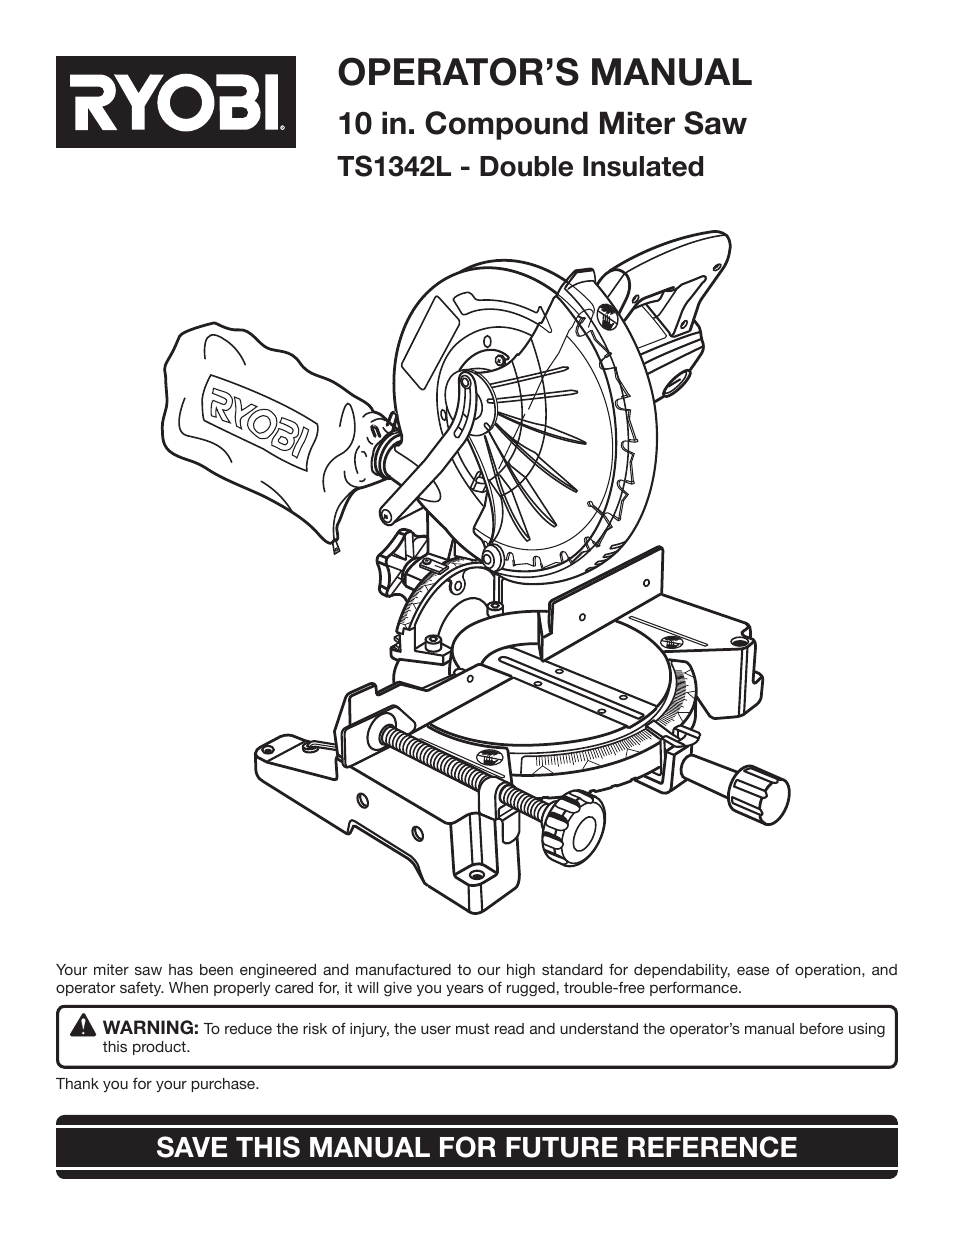 Ryobi s430 ry34441 user manual | 56 pages | also for: c430 ry34421.